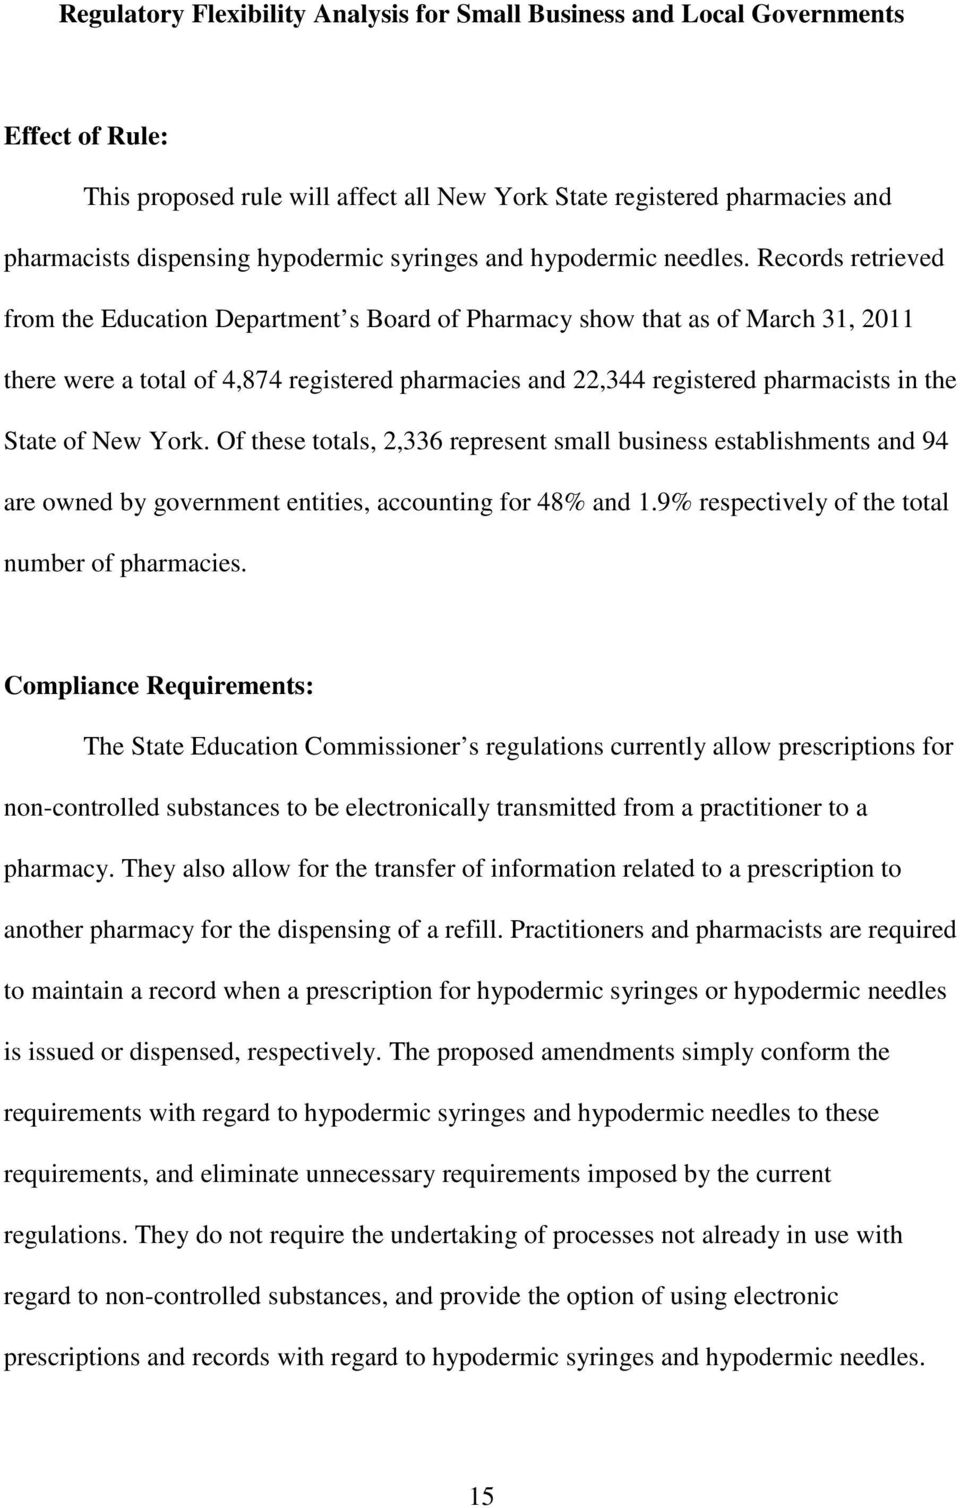 Records retrieved from the Education Department s Board of Pharmacy show that as of March 31, 2011 there were a total of 4,874 registered pharmacies and 22,344 registered pharmacists in the State of